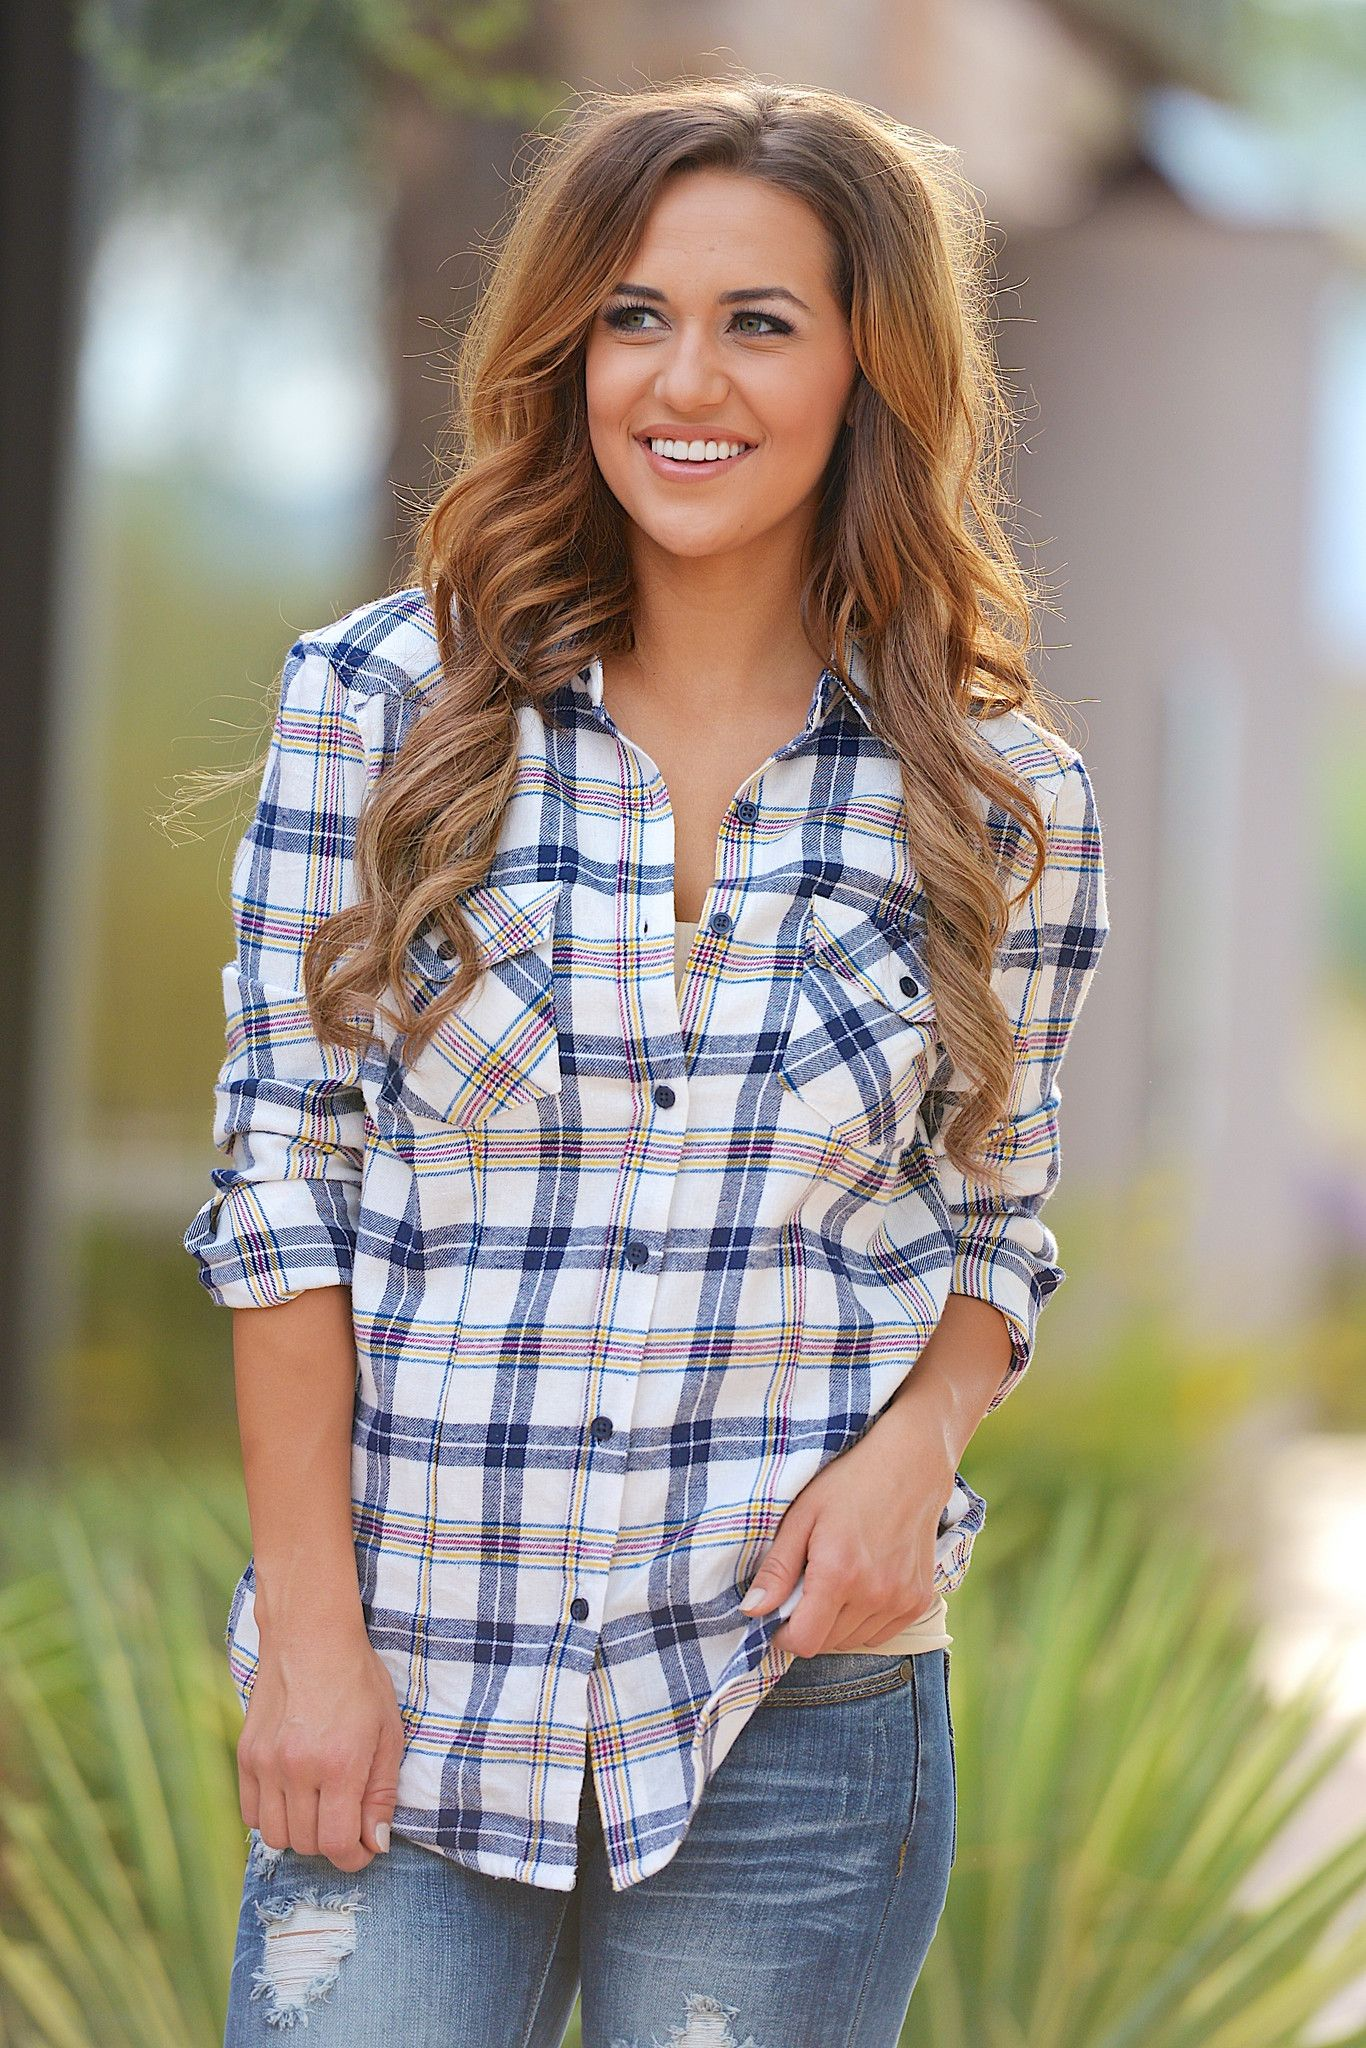 Ripped jeans flannel shirt  Use discount code repbrandi for  off plus free shipping Like my